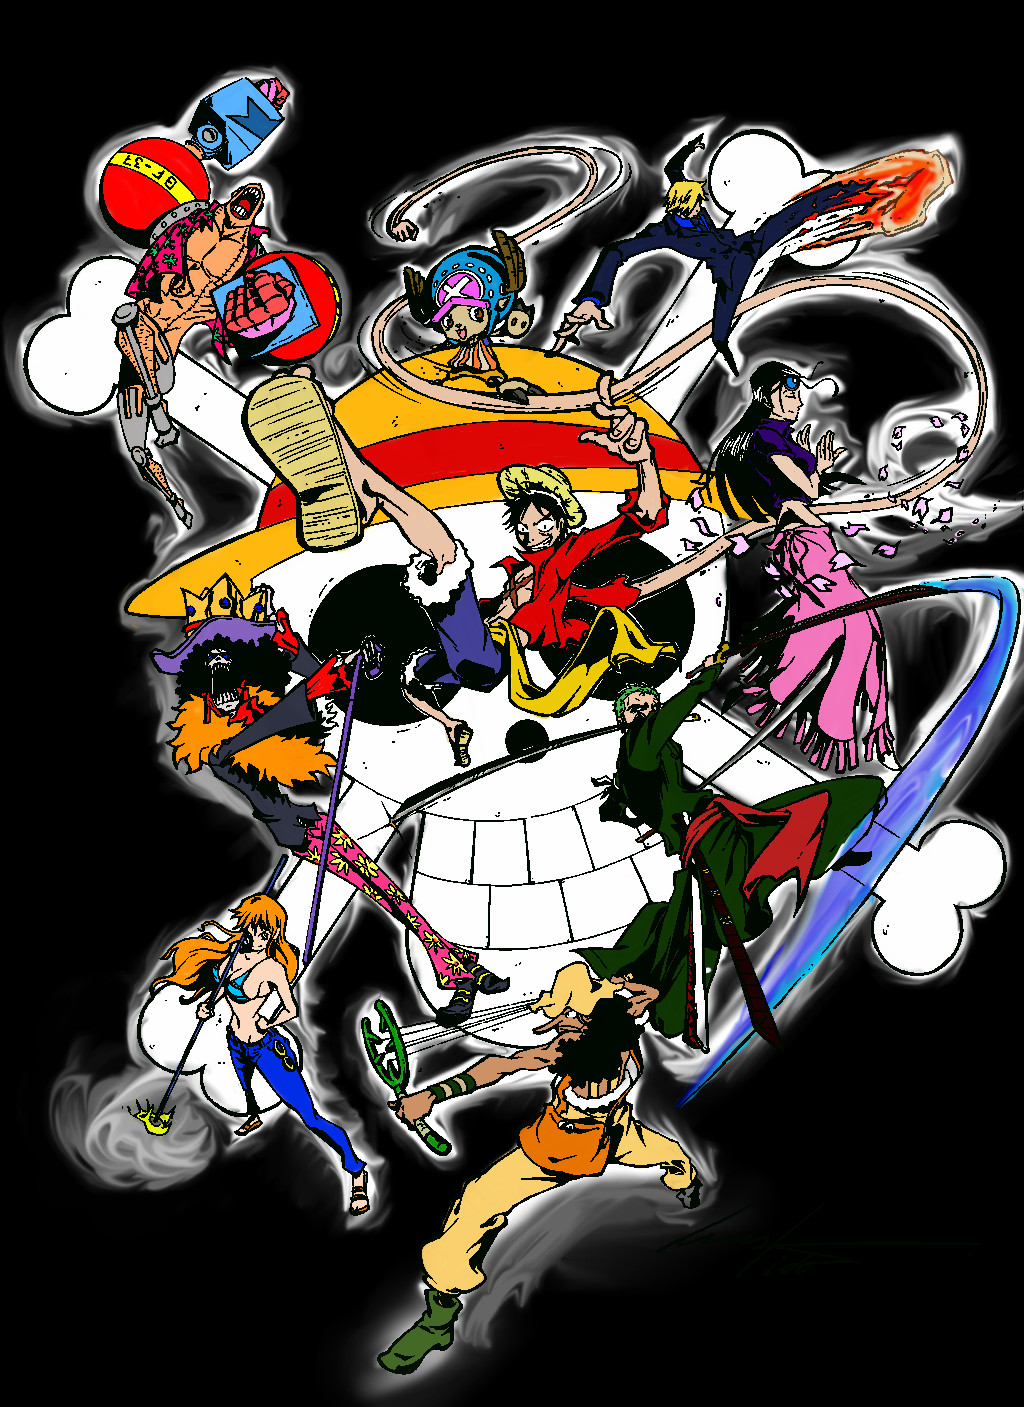 One Piece Crew's Power Colour by KageRyuMusic on DeviantArt